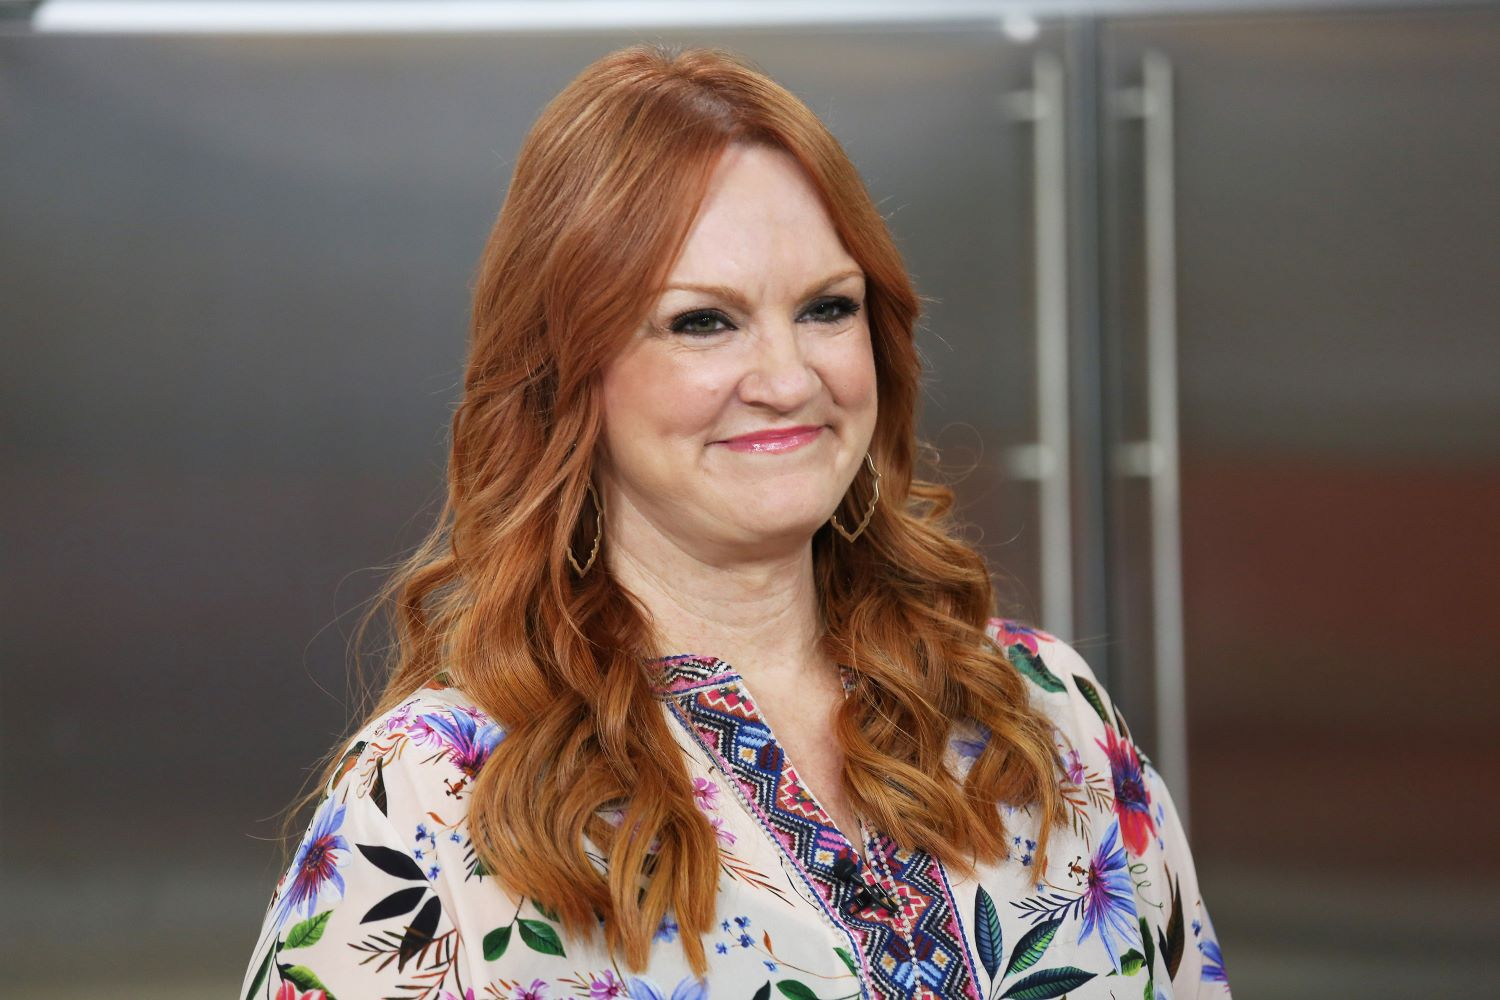 'The Pioneer Woman' Ree Drummond on Today show